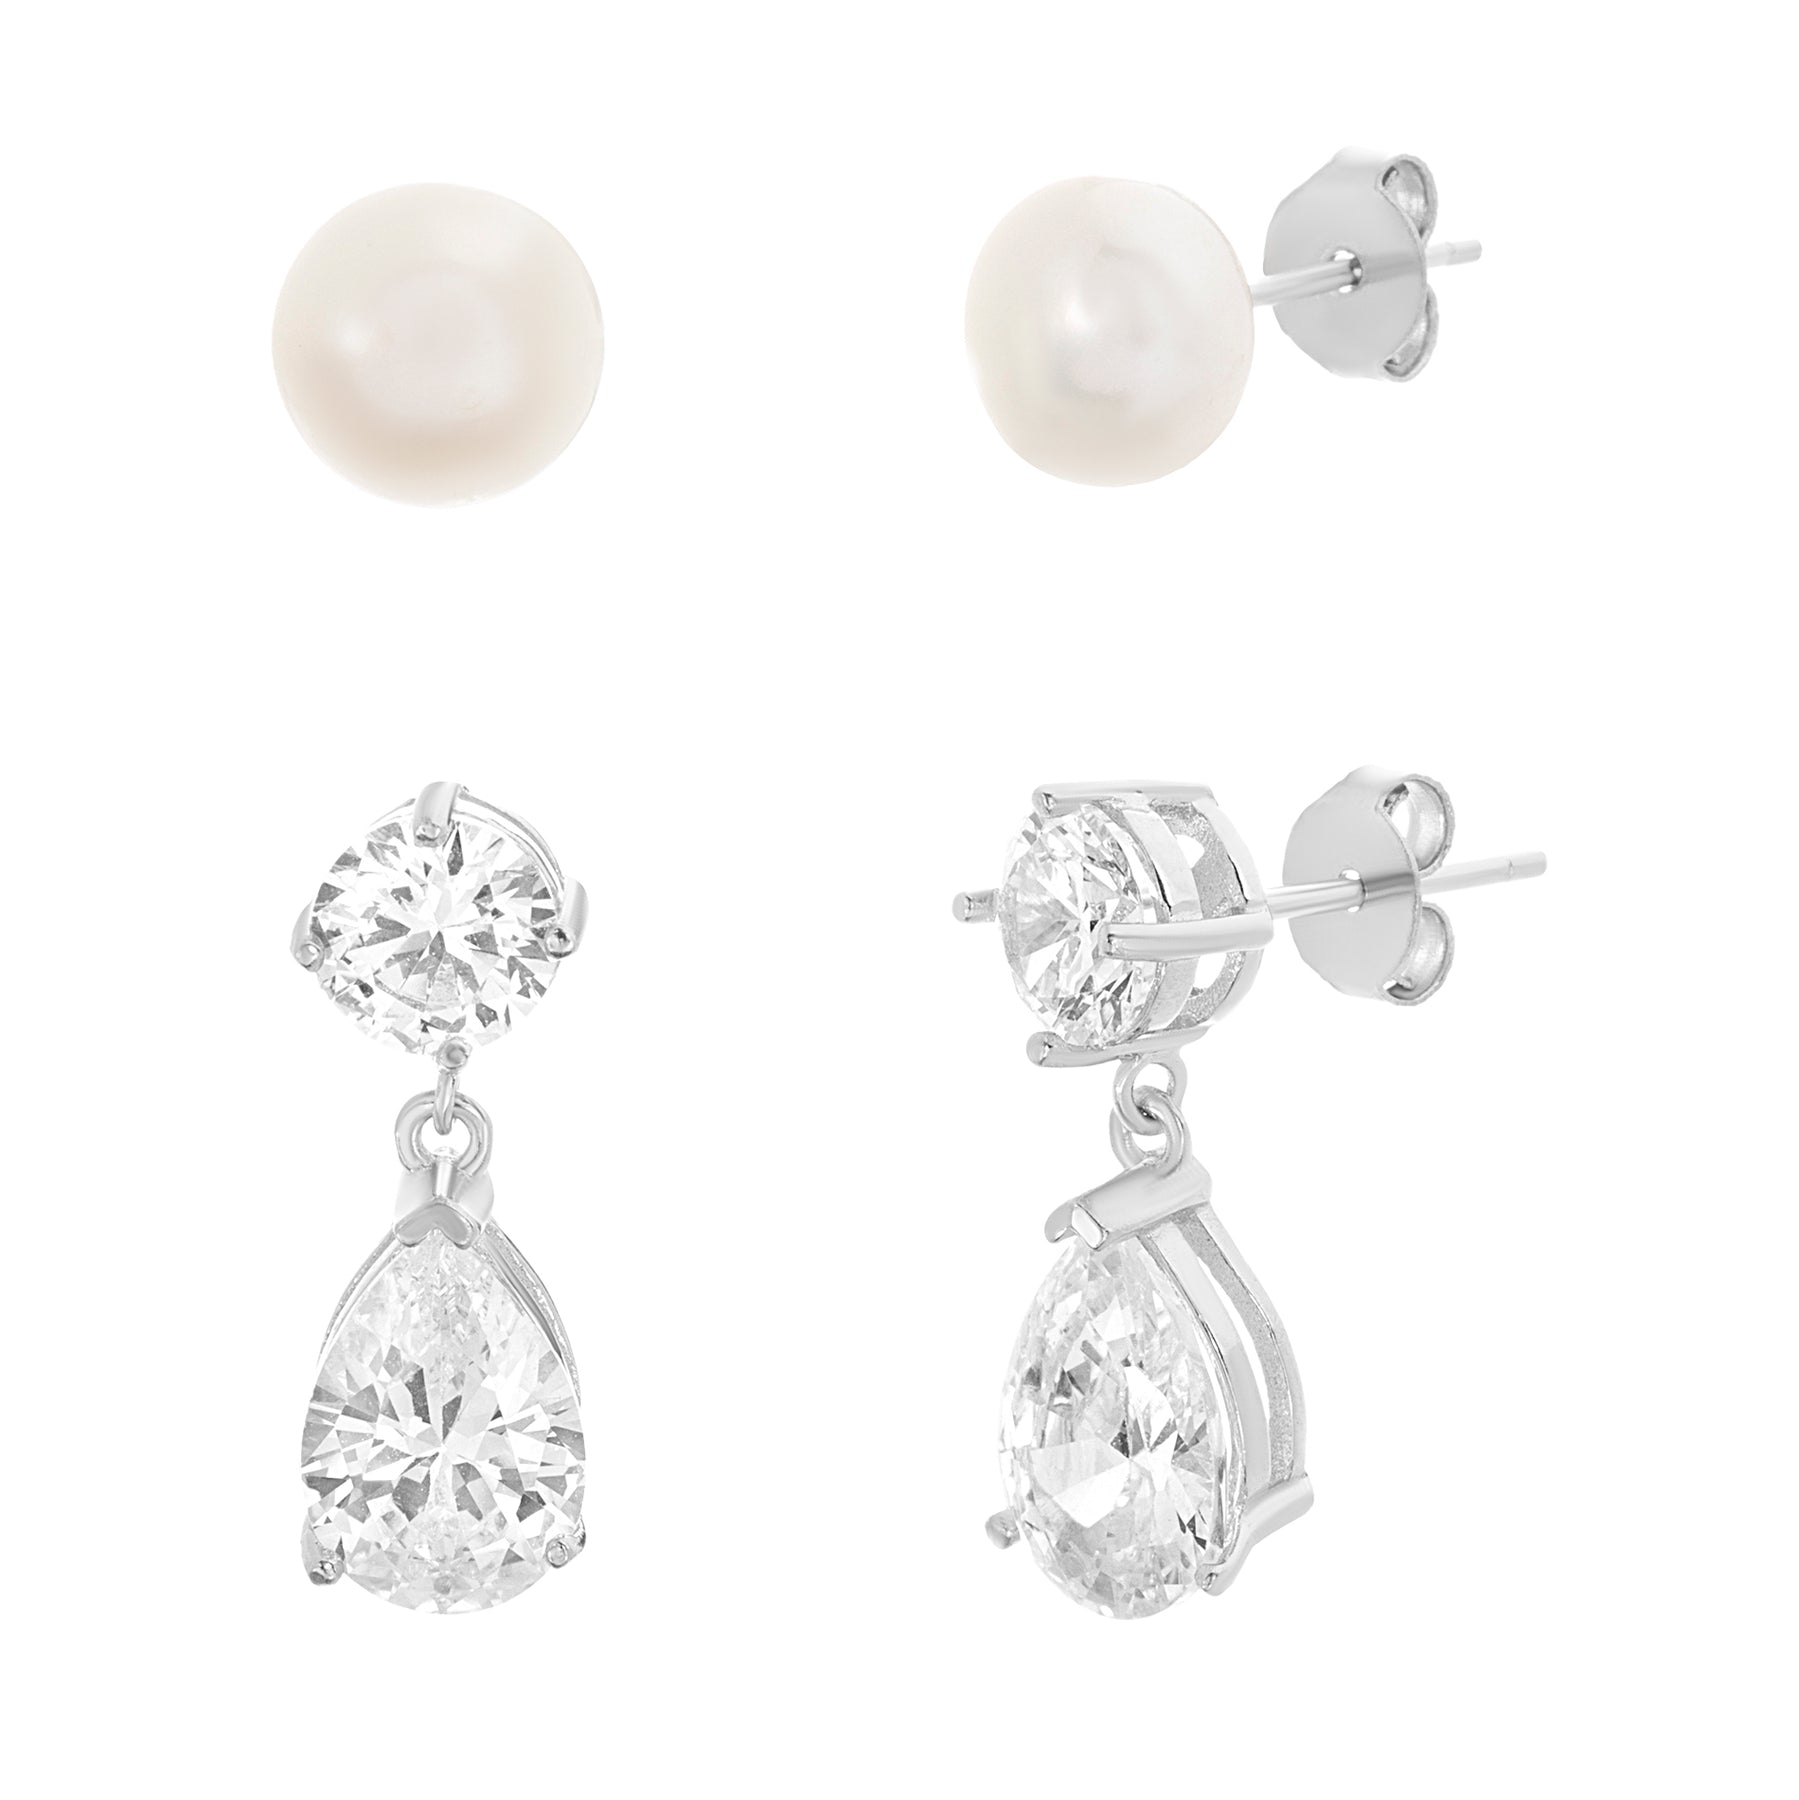 925 Sterling Silver Rhodium-plated 5-6mm White Round Freshwater Cultured Pearl /& CZ Hoop Earrings